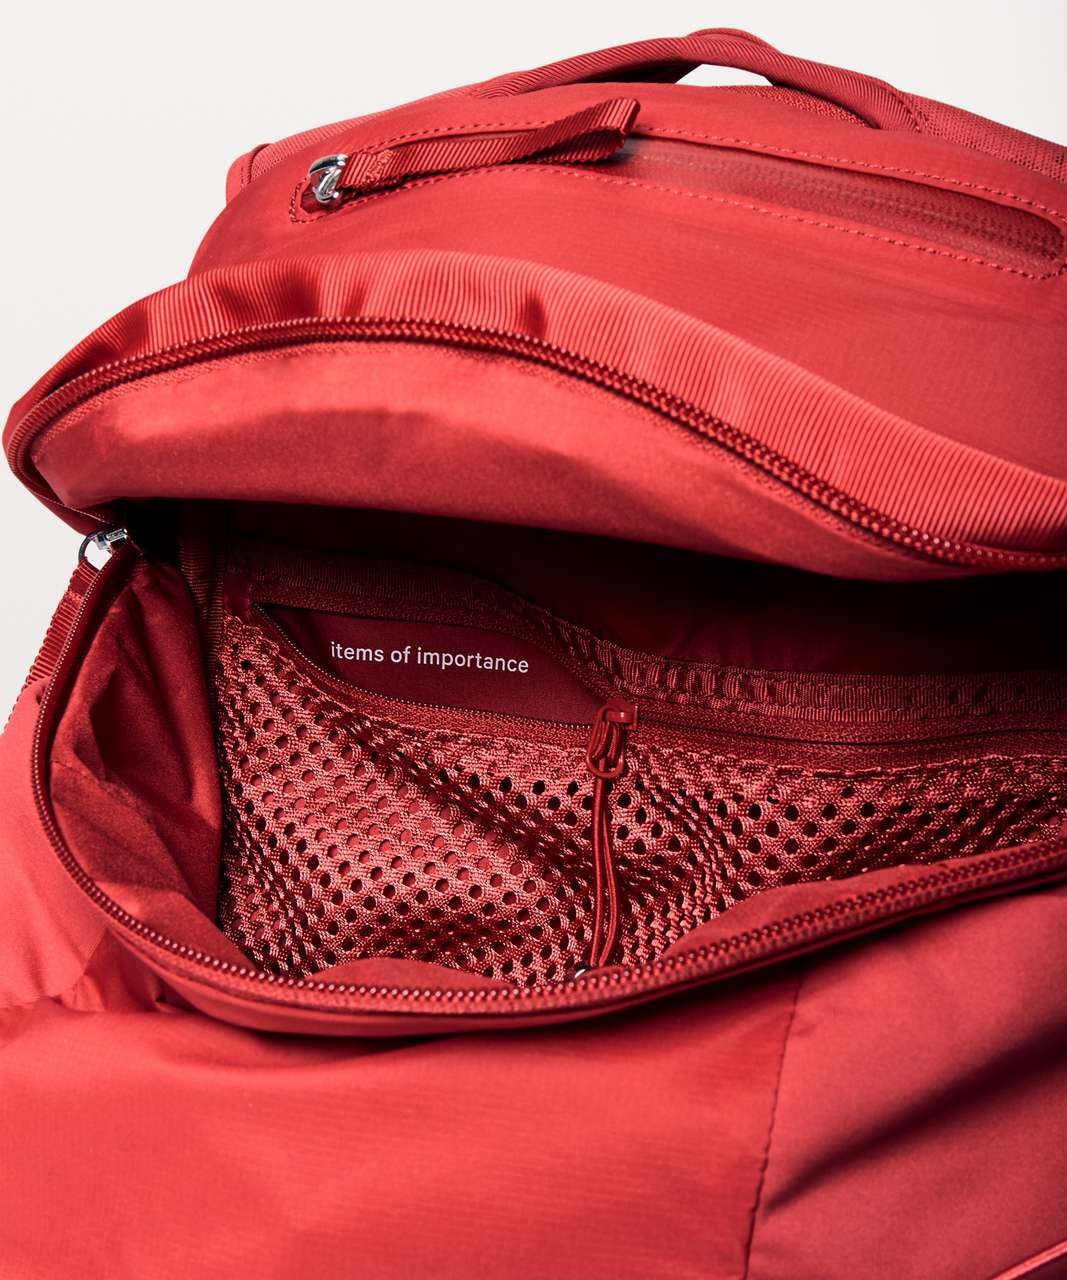 Lululemon Run All Day Backpack II *13L - Persian Red